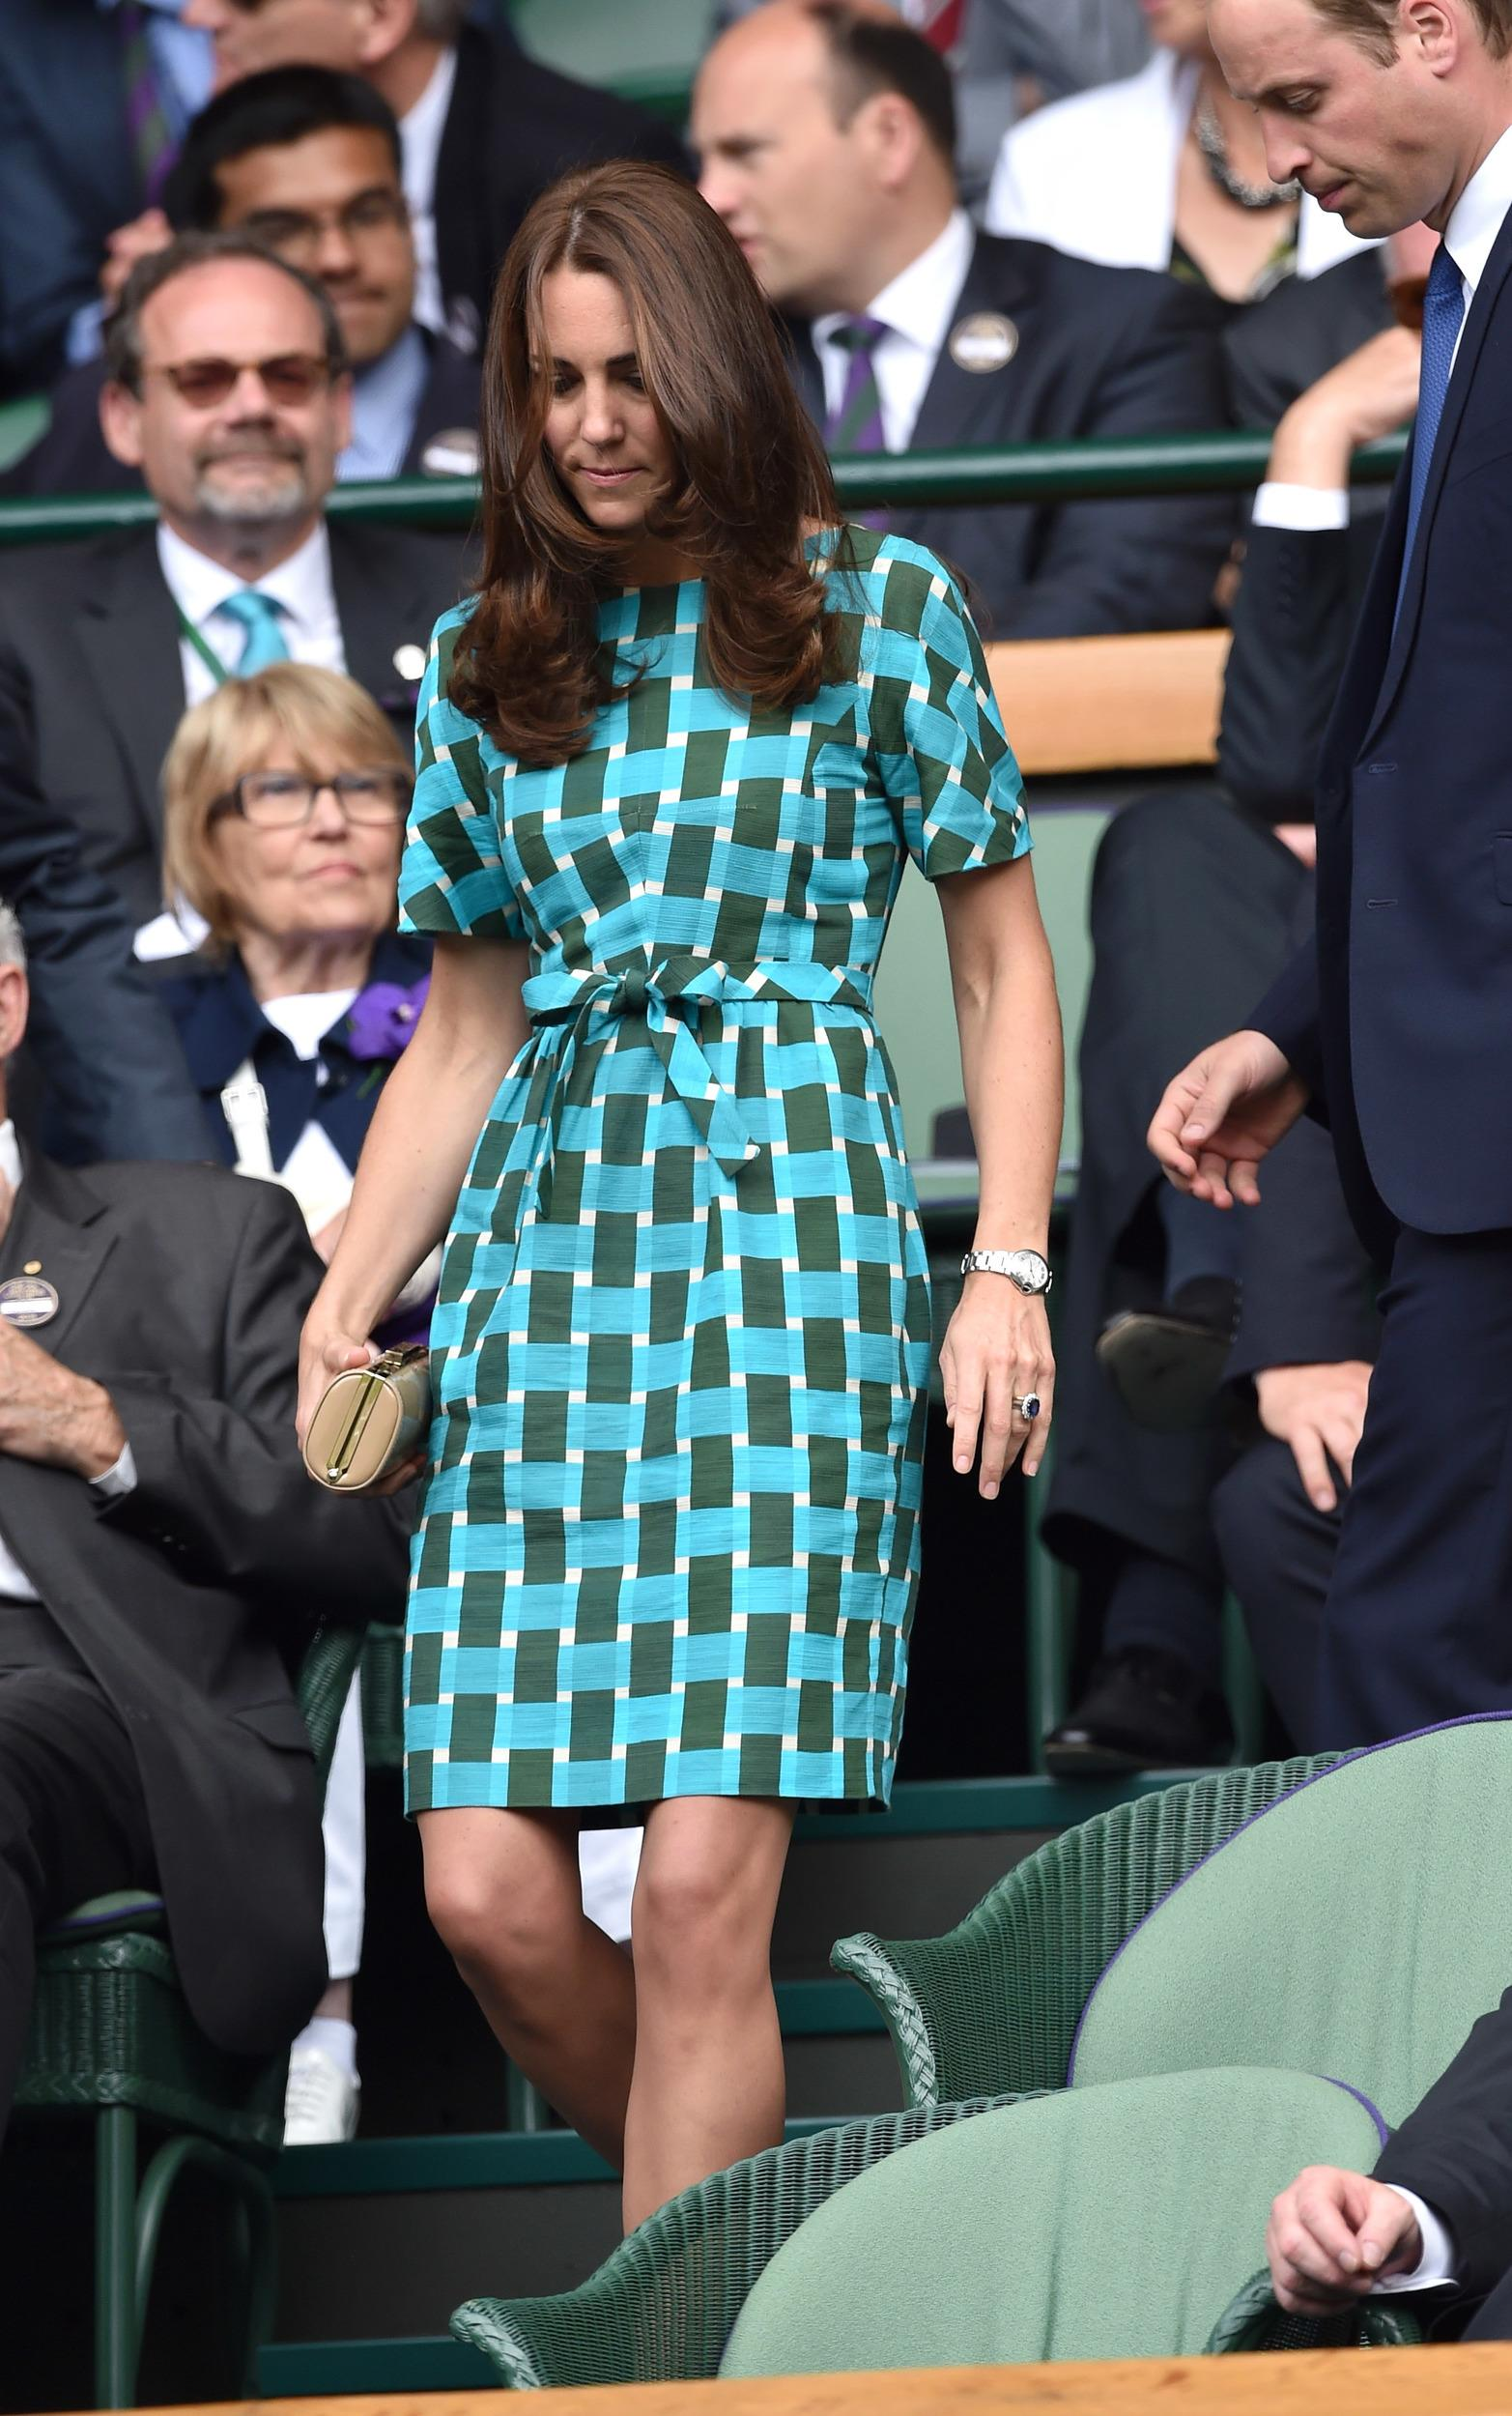 For the Wimbledon finals, Kate recycled this Jonathan Saunders dress she wore during the Jubilee Royal Tour in 2012.